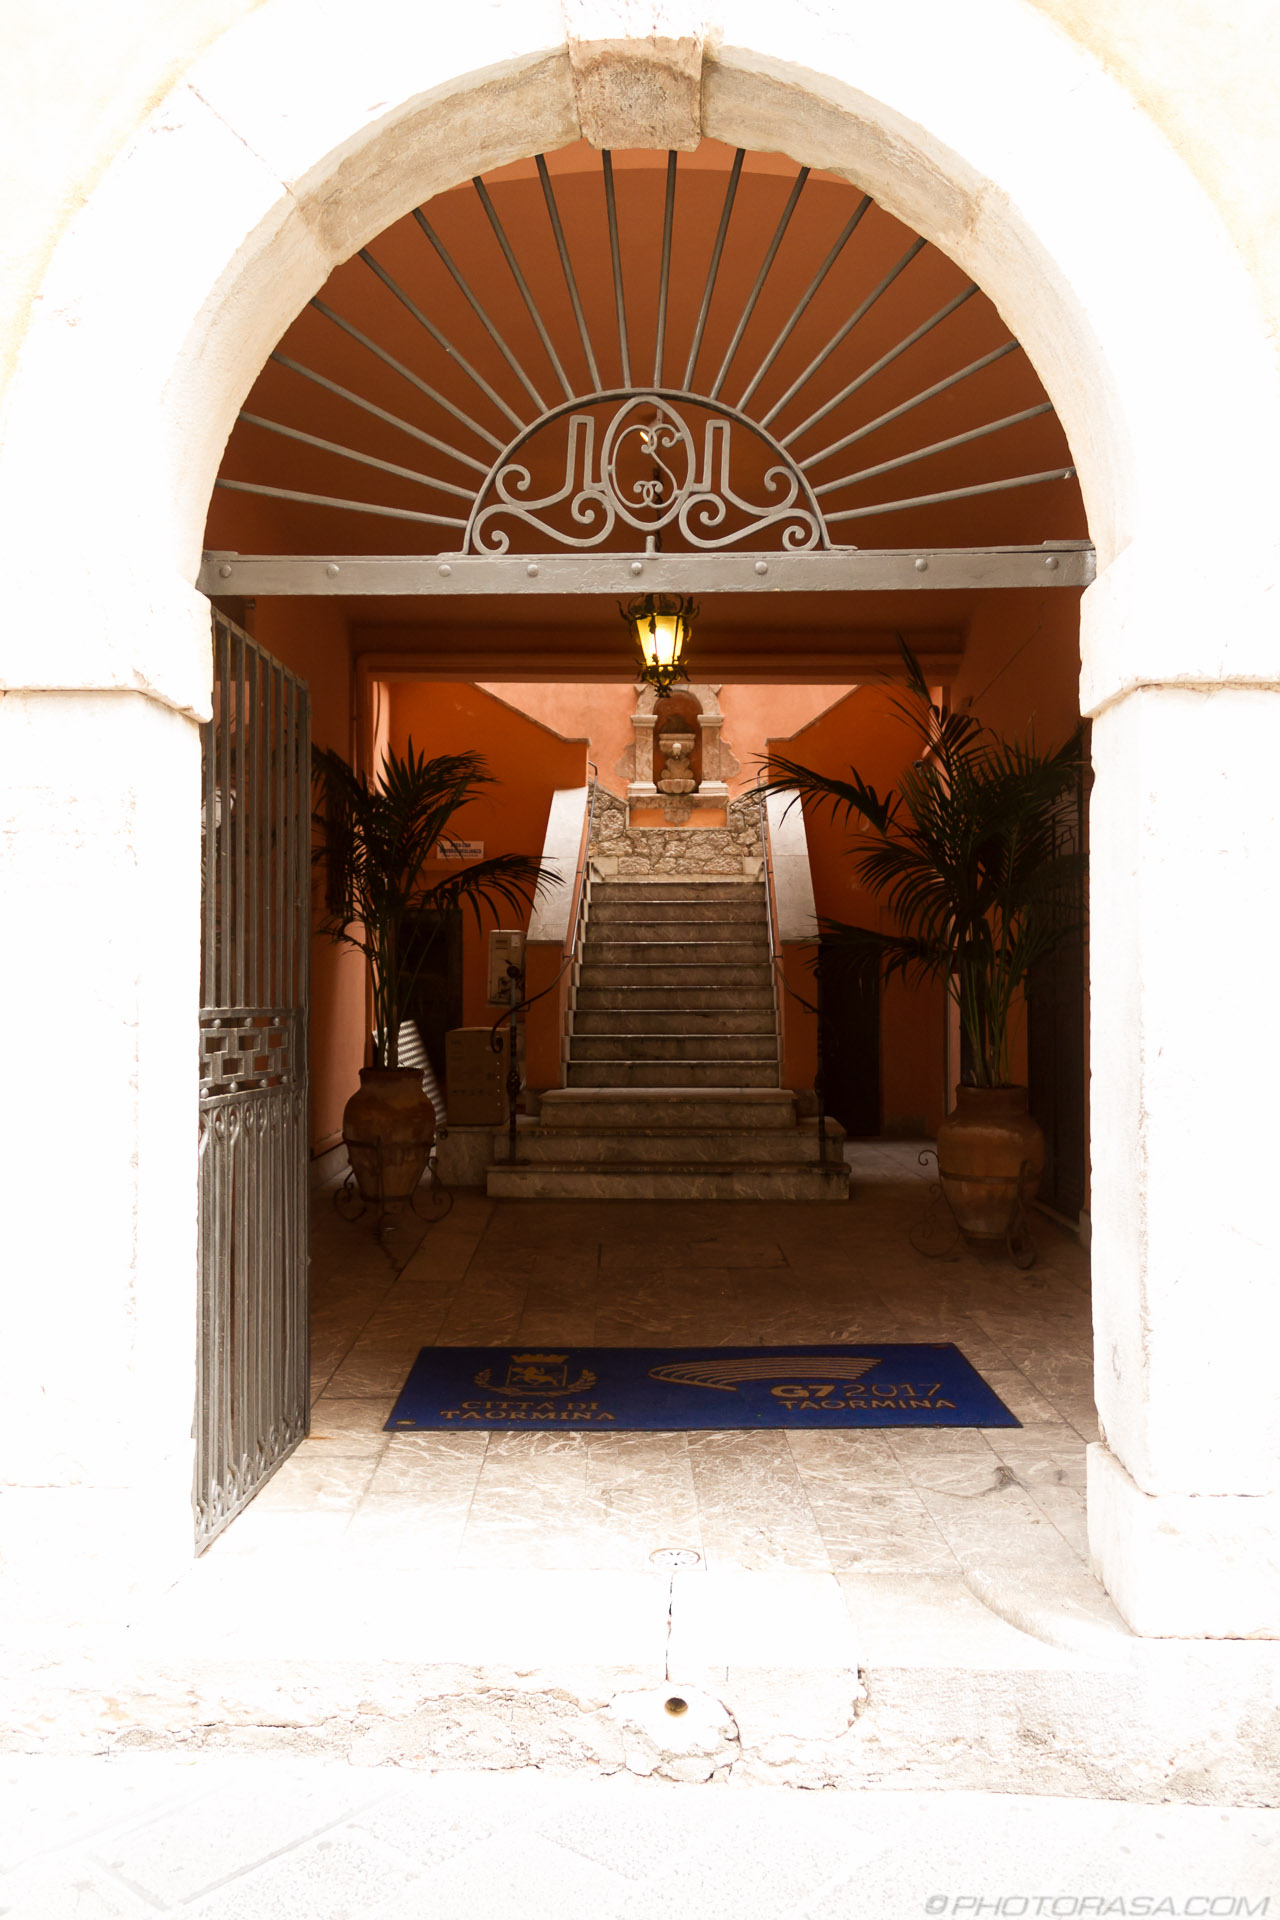 http://photorasa.com/taormina/building-entrance/